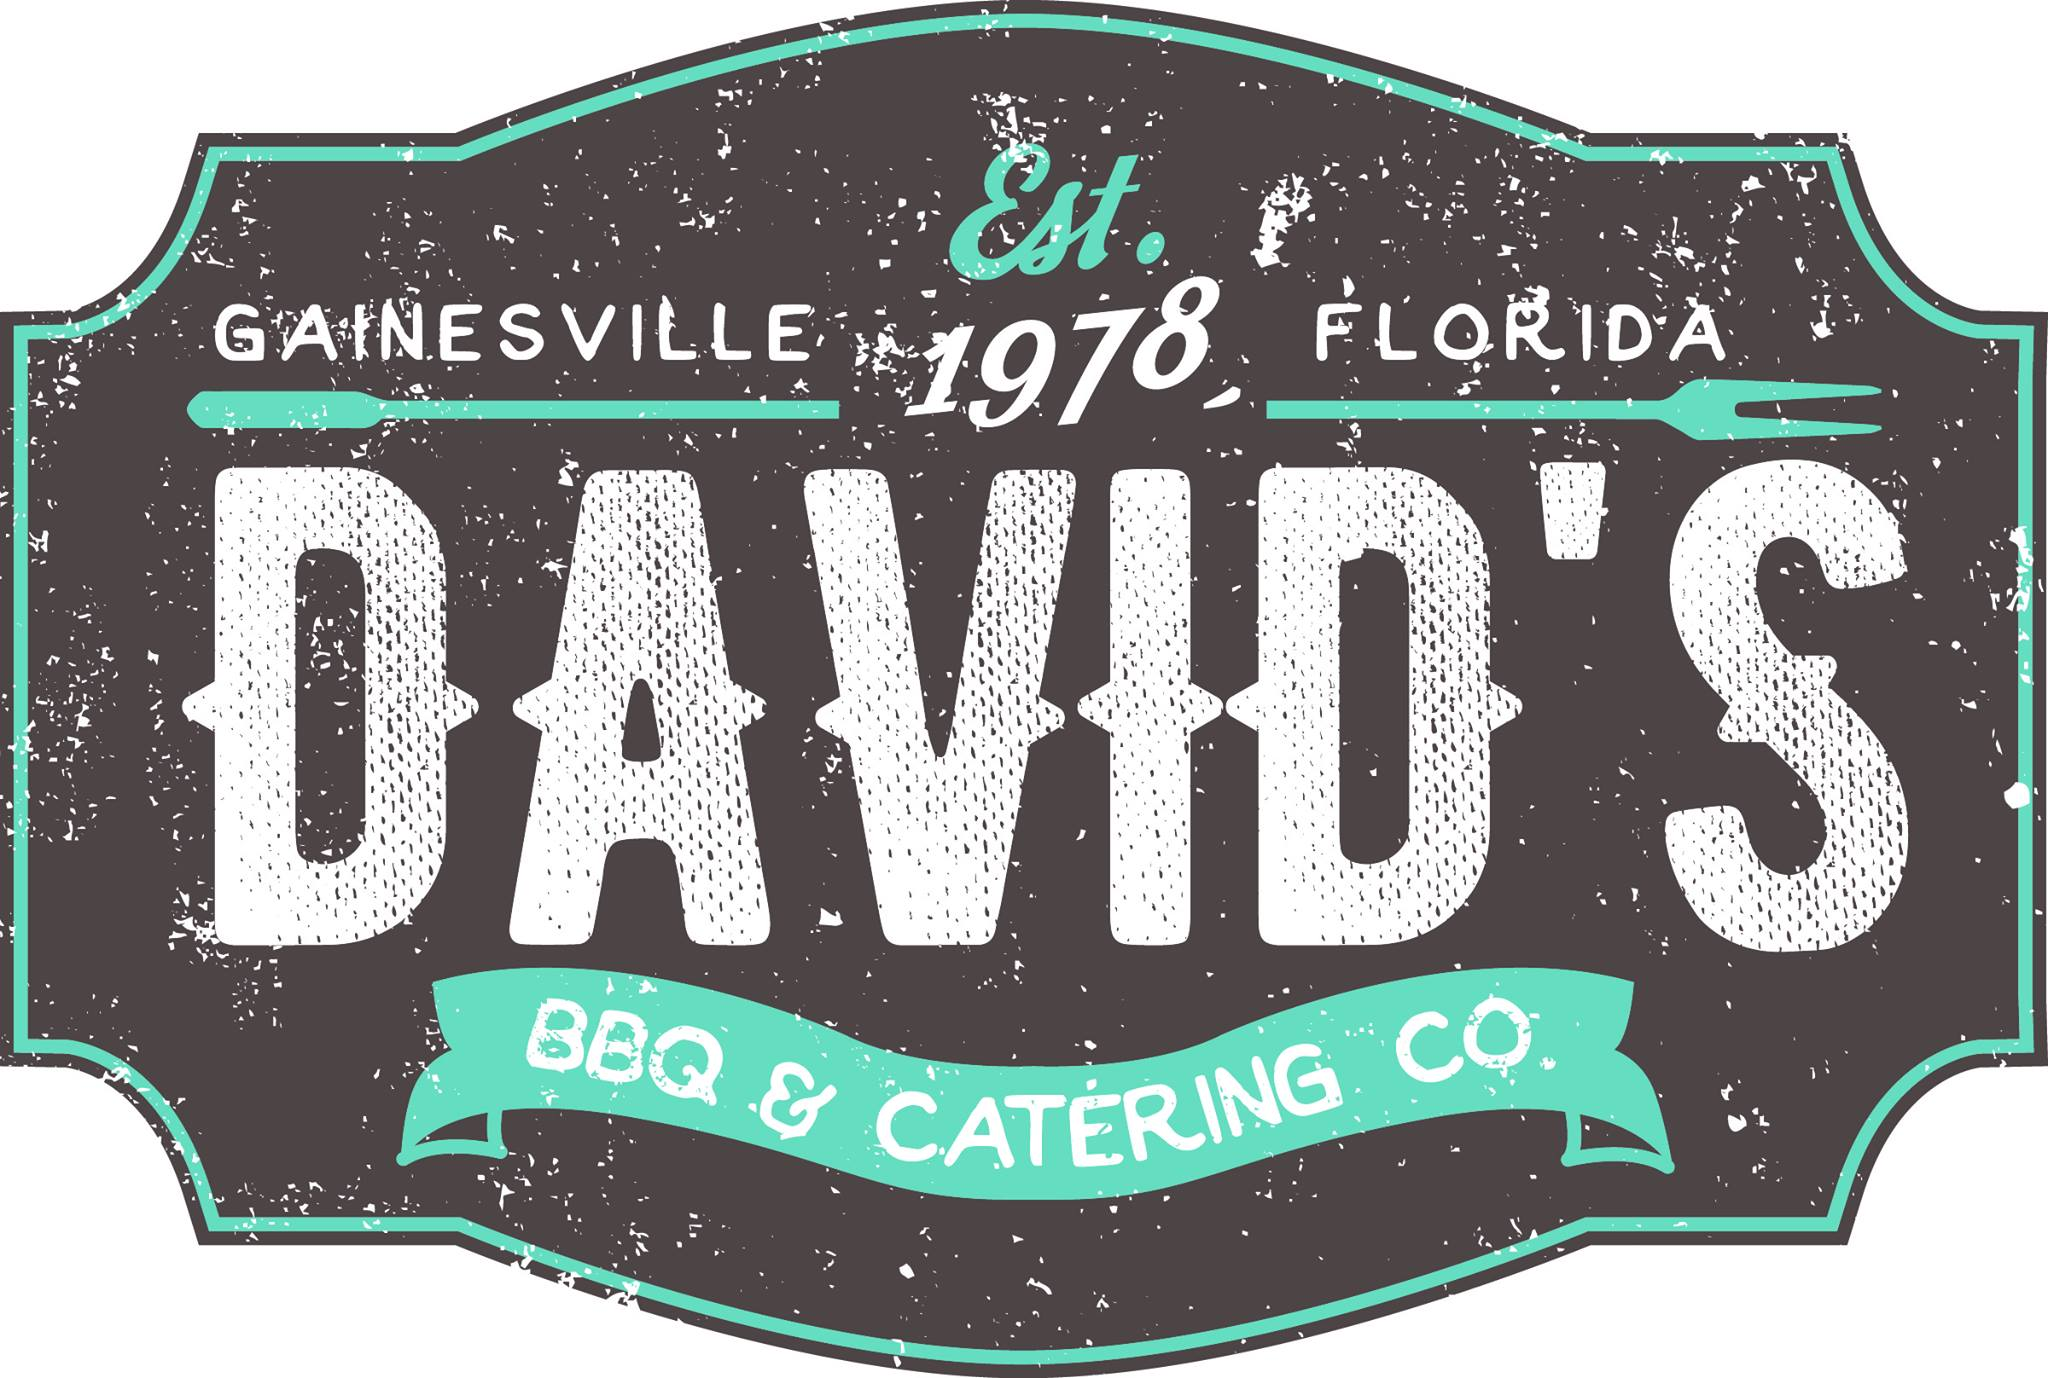 David's BBQ & Catering is a Leading Wedding Caterer in Gainesville, FL